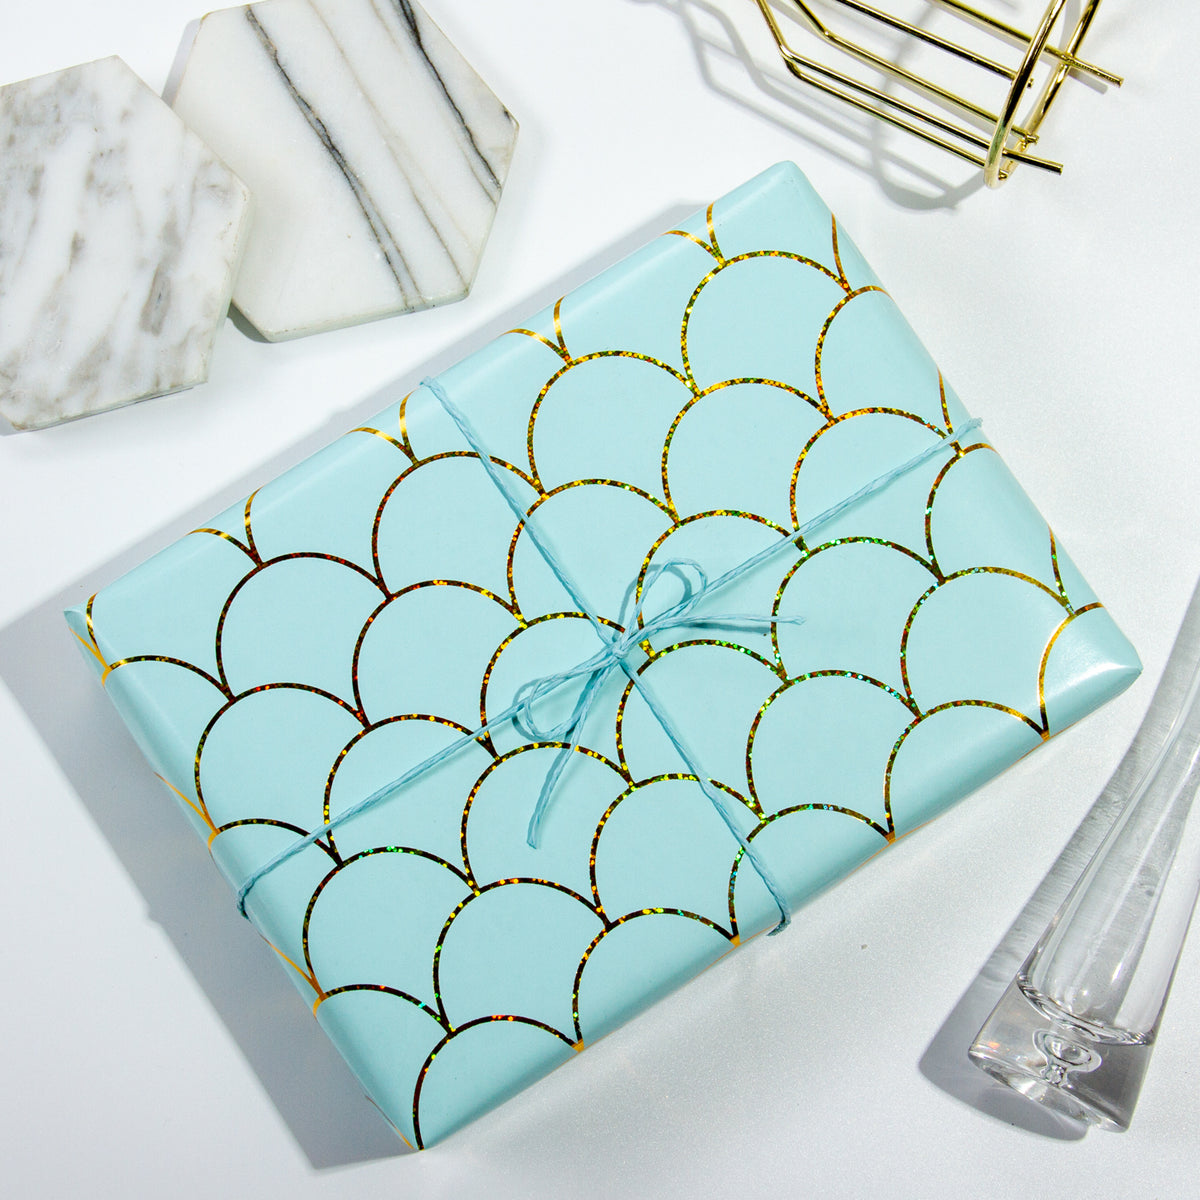 Wrapaholic-Mint-Color -with-Gold-Foil- Mermaid-Design-Gift- Wrapping -Paper-Roll-5